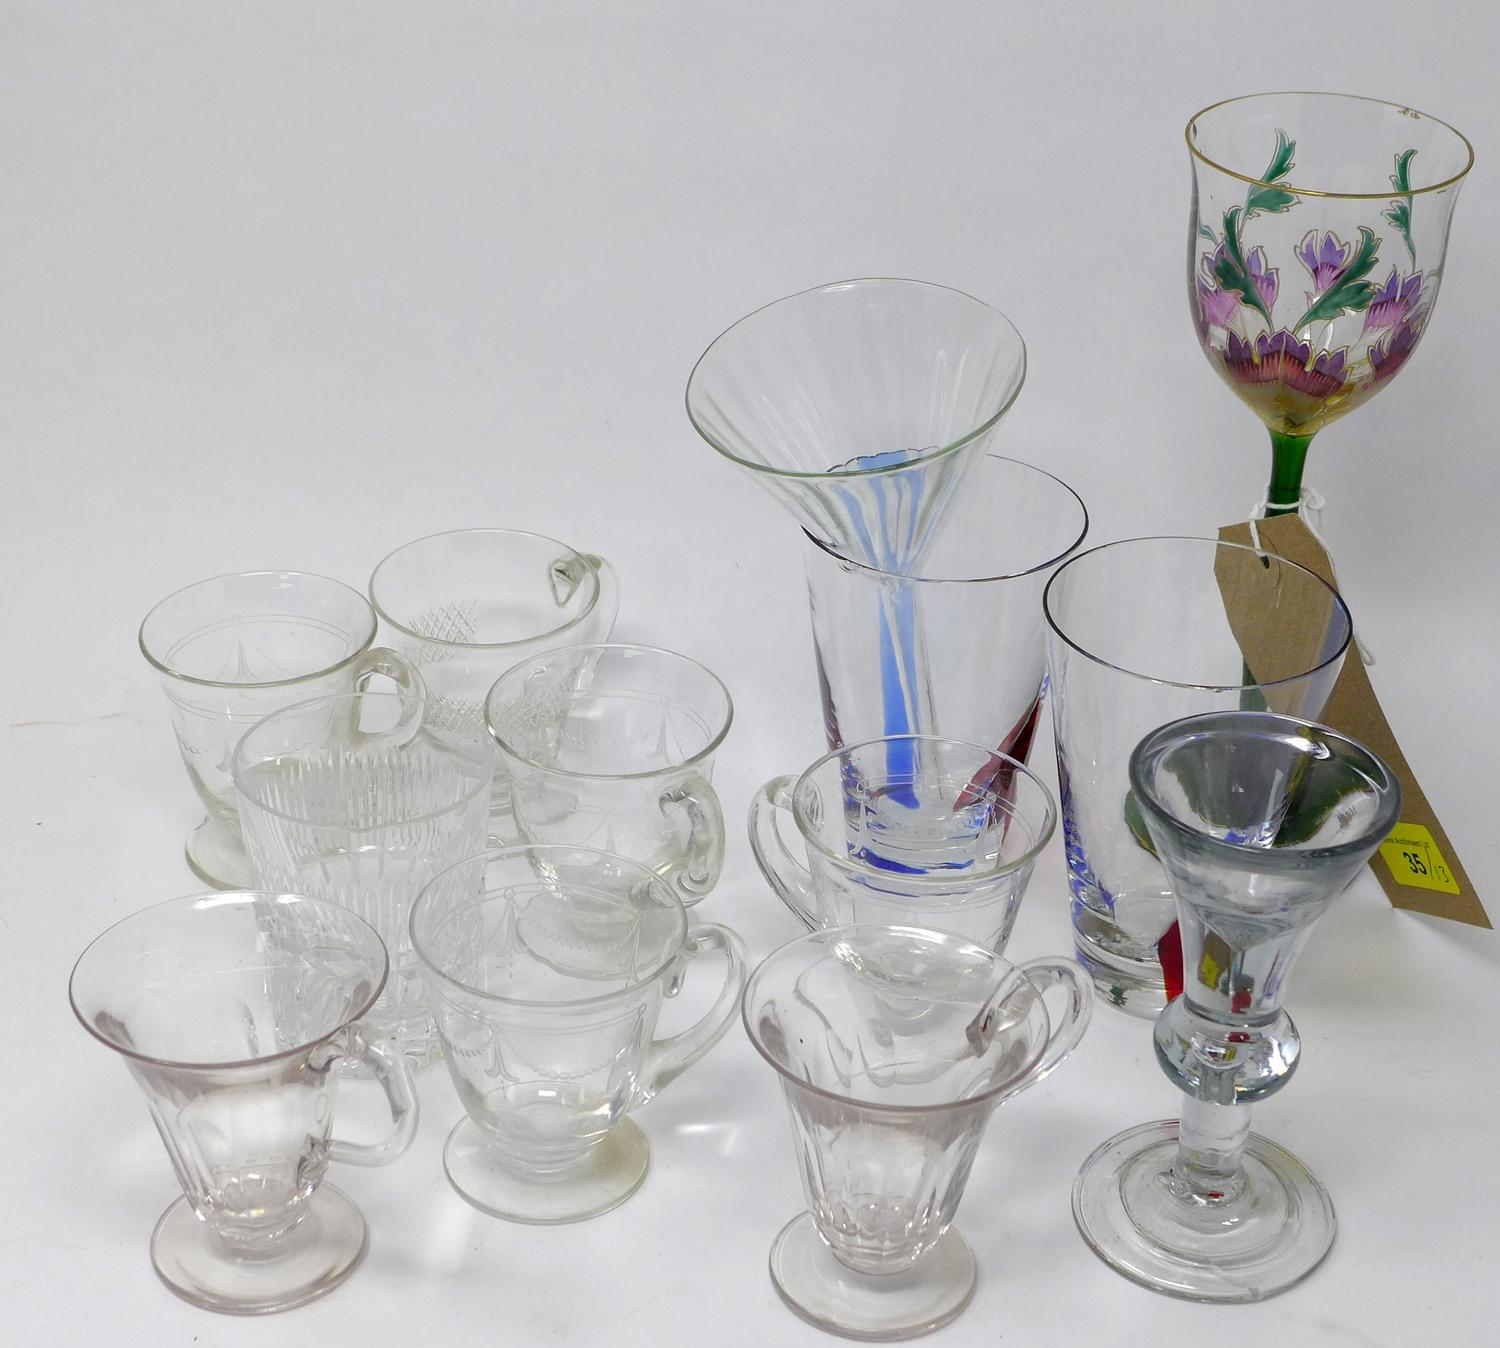 Lot 35 - An assorted collection of glasses, to include water glasses, drinks glasses, glass funnel, and a